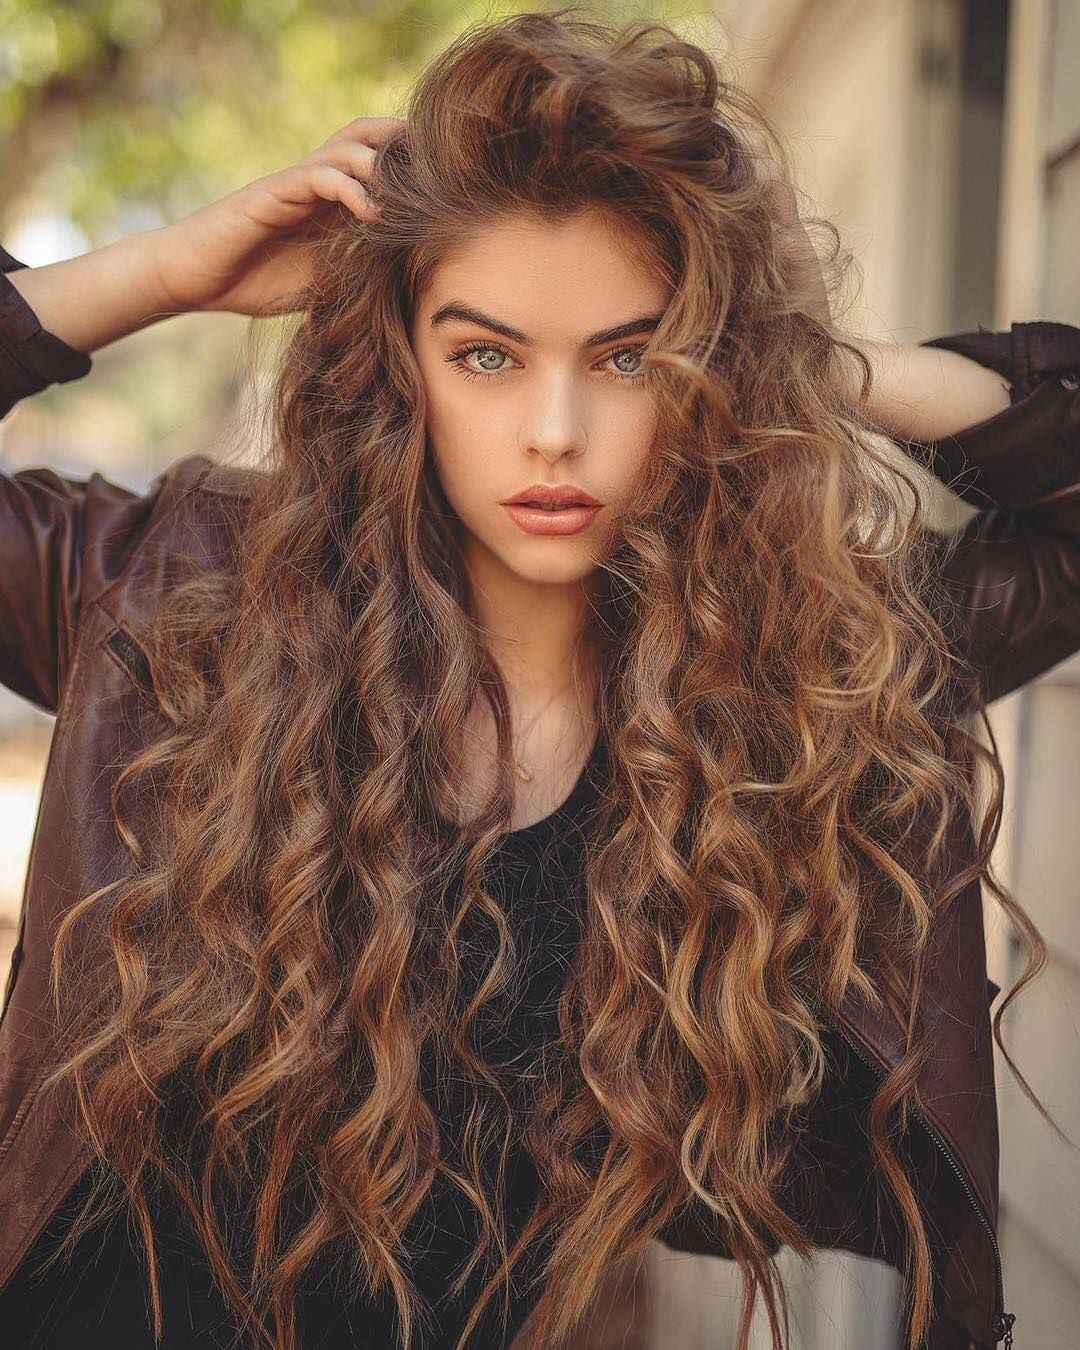 Sag Actress Dancer Model On Instagram I Love Fall Do You Sagaj Justg In 2020 Spring Hairstyles Curly Hair Styles Long Curly Hair